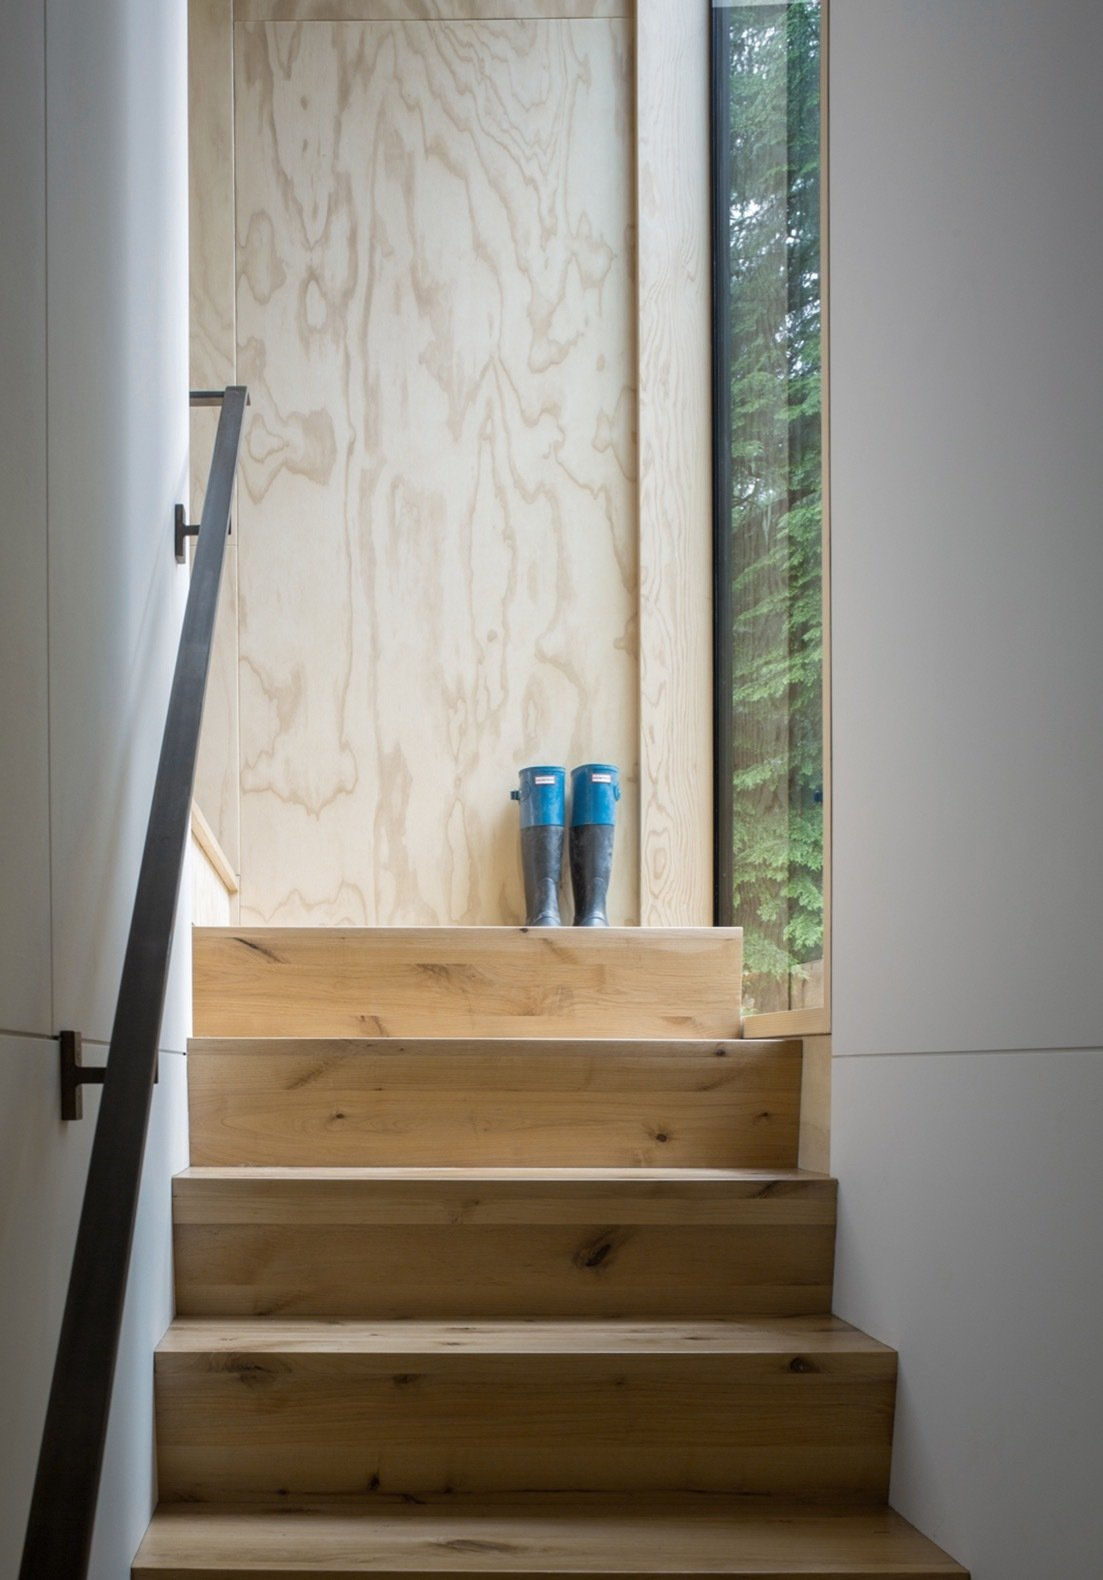 Staircase, Wood Tread, and Metal Railing Timber stairs connect the entry to the upstairs bedrooms.    Photo 7 of 15 in This Little House in Washington Has Mighty Big Ties to Nature